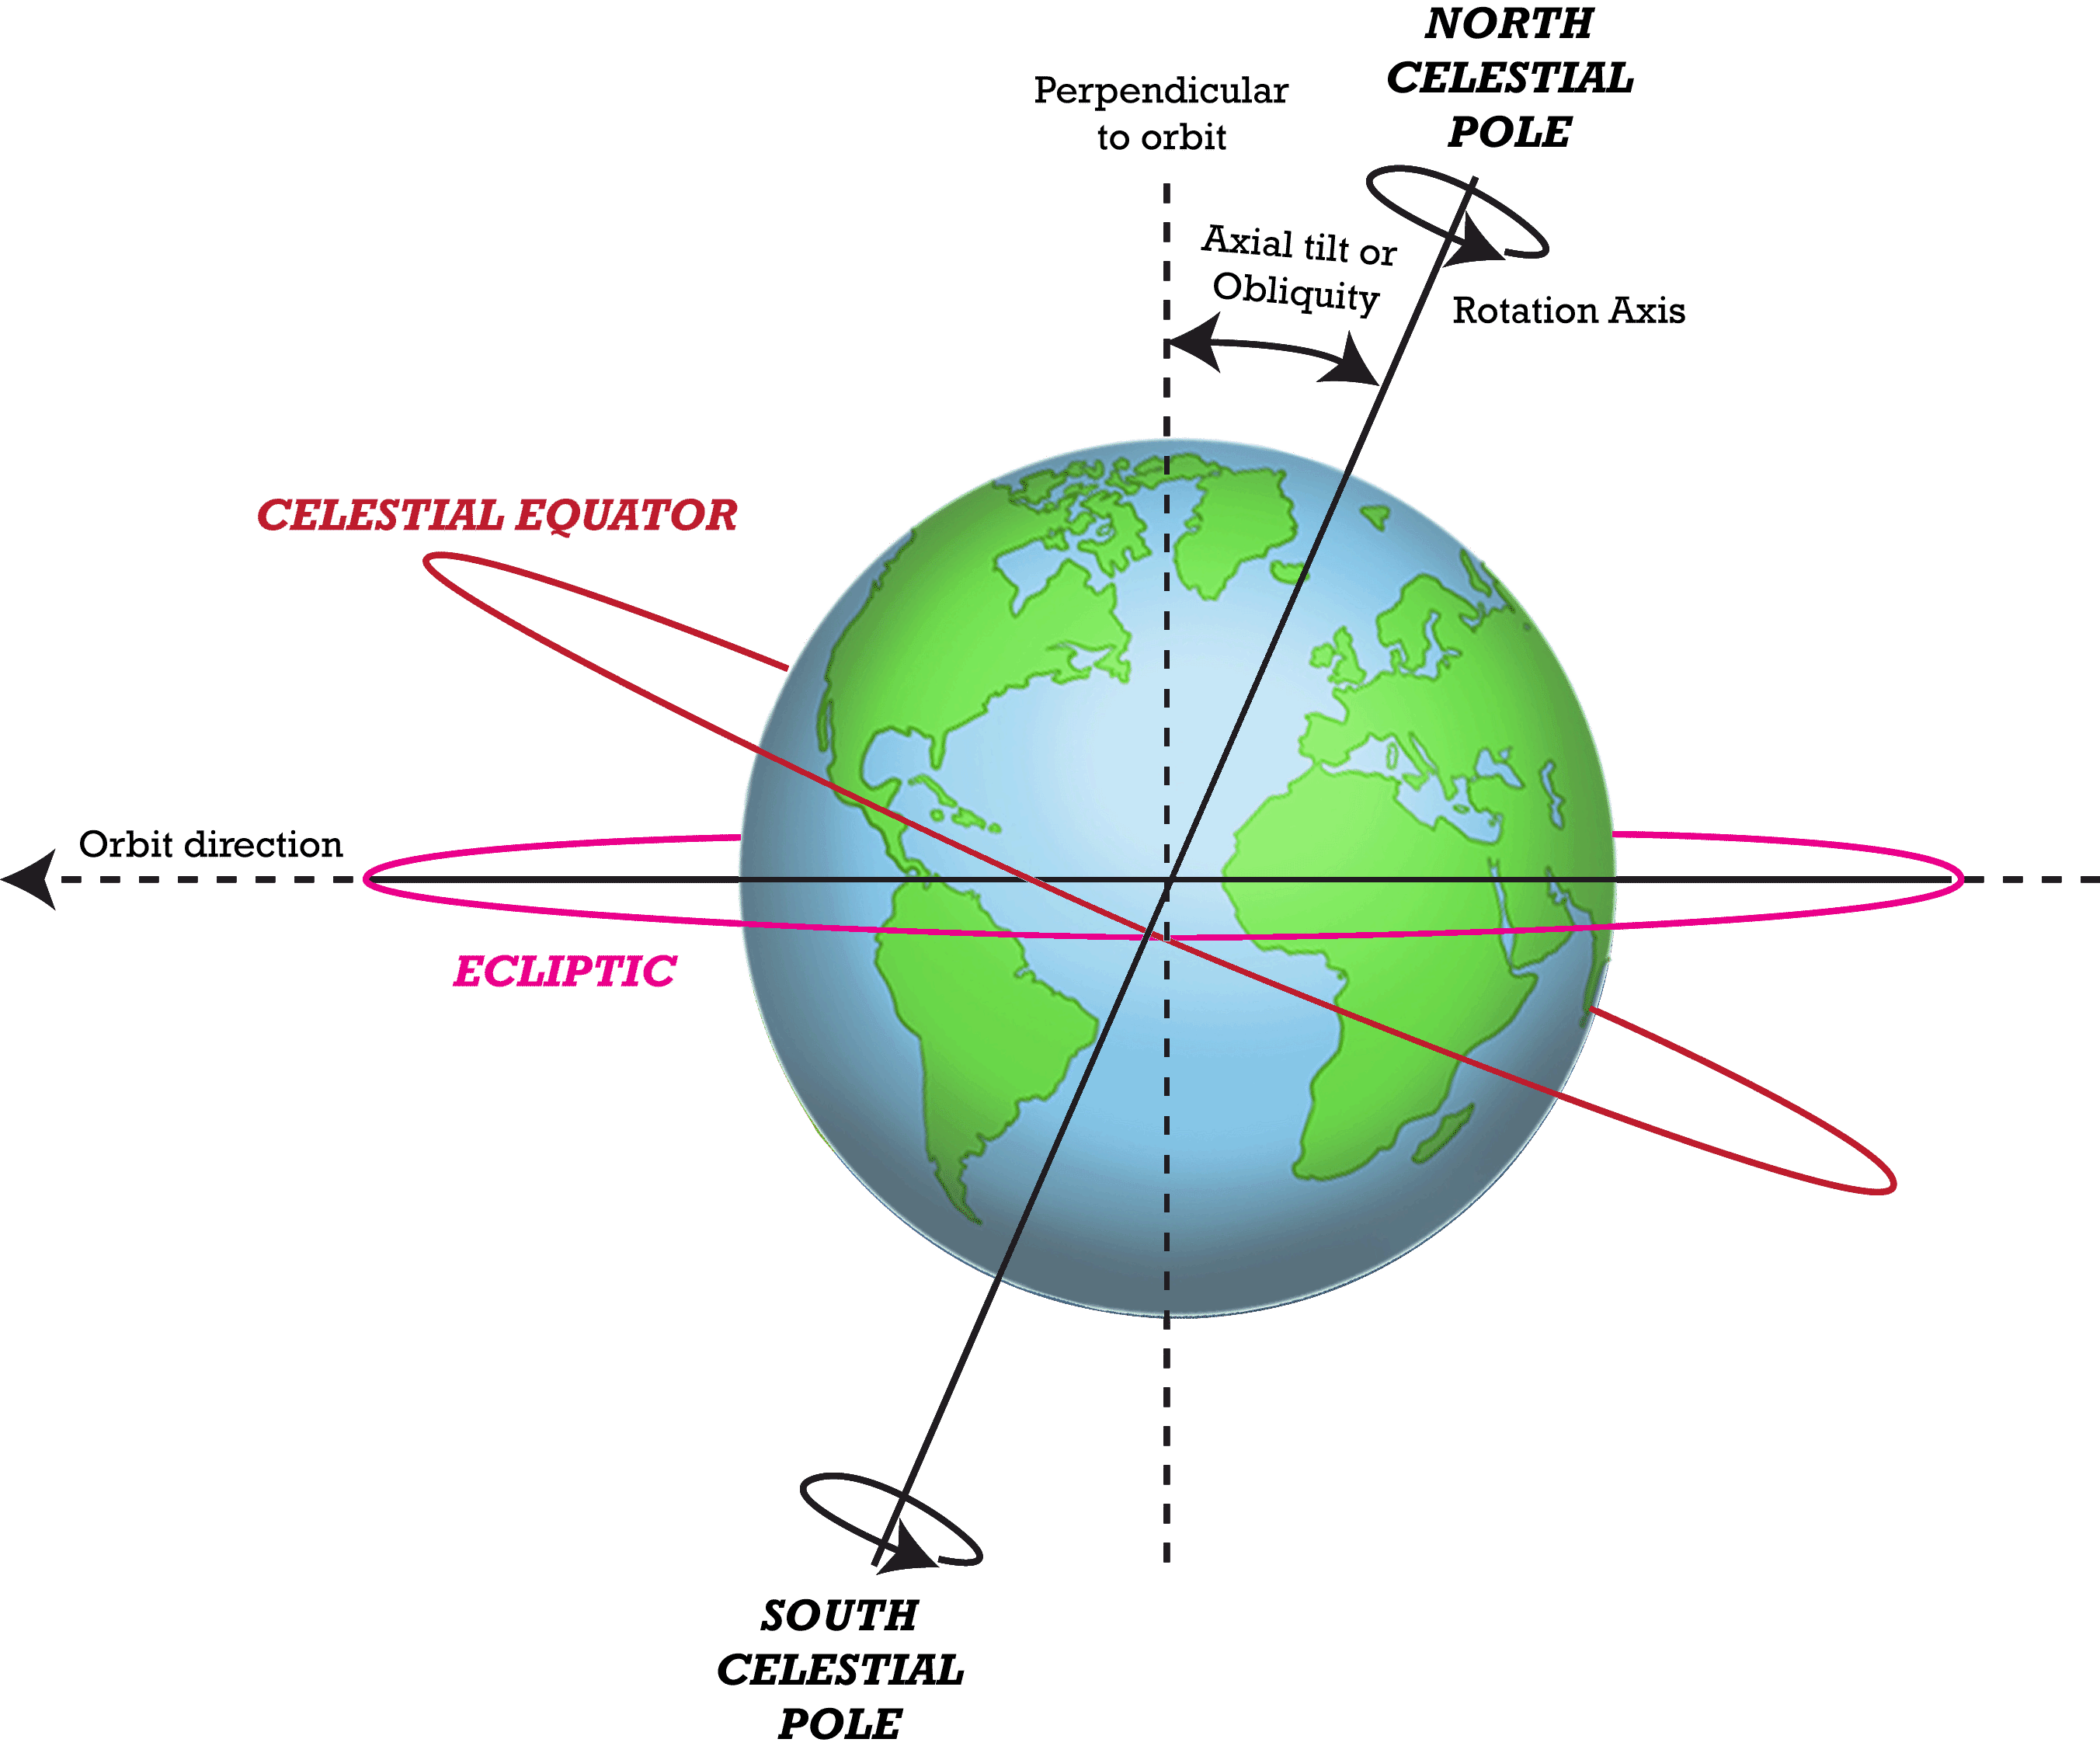 earth tilt and seasons diagram pir switch wiring s motion in space gr 4 5 read user generated content advanced topic